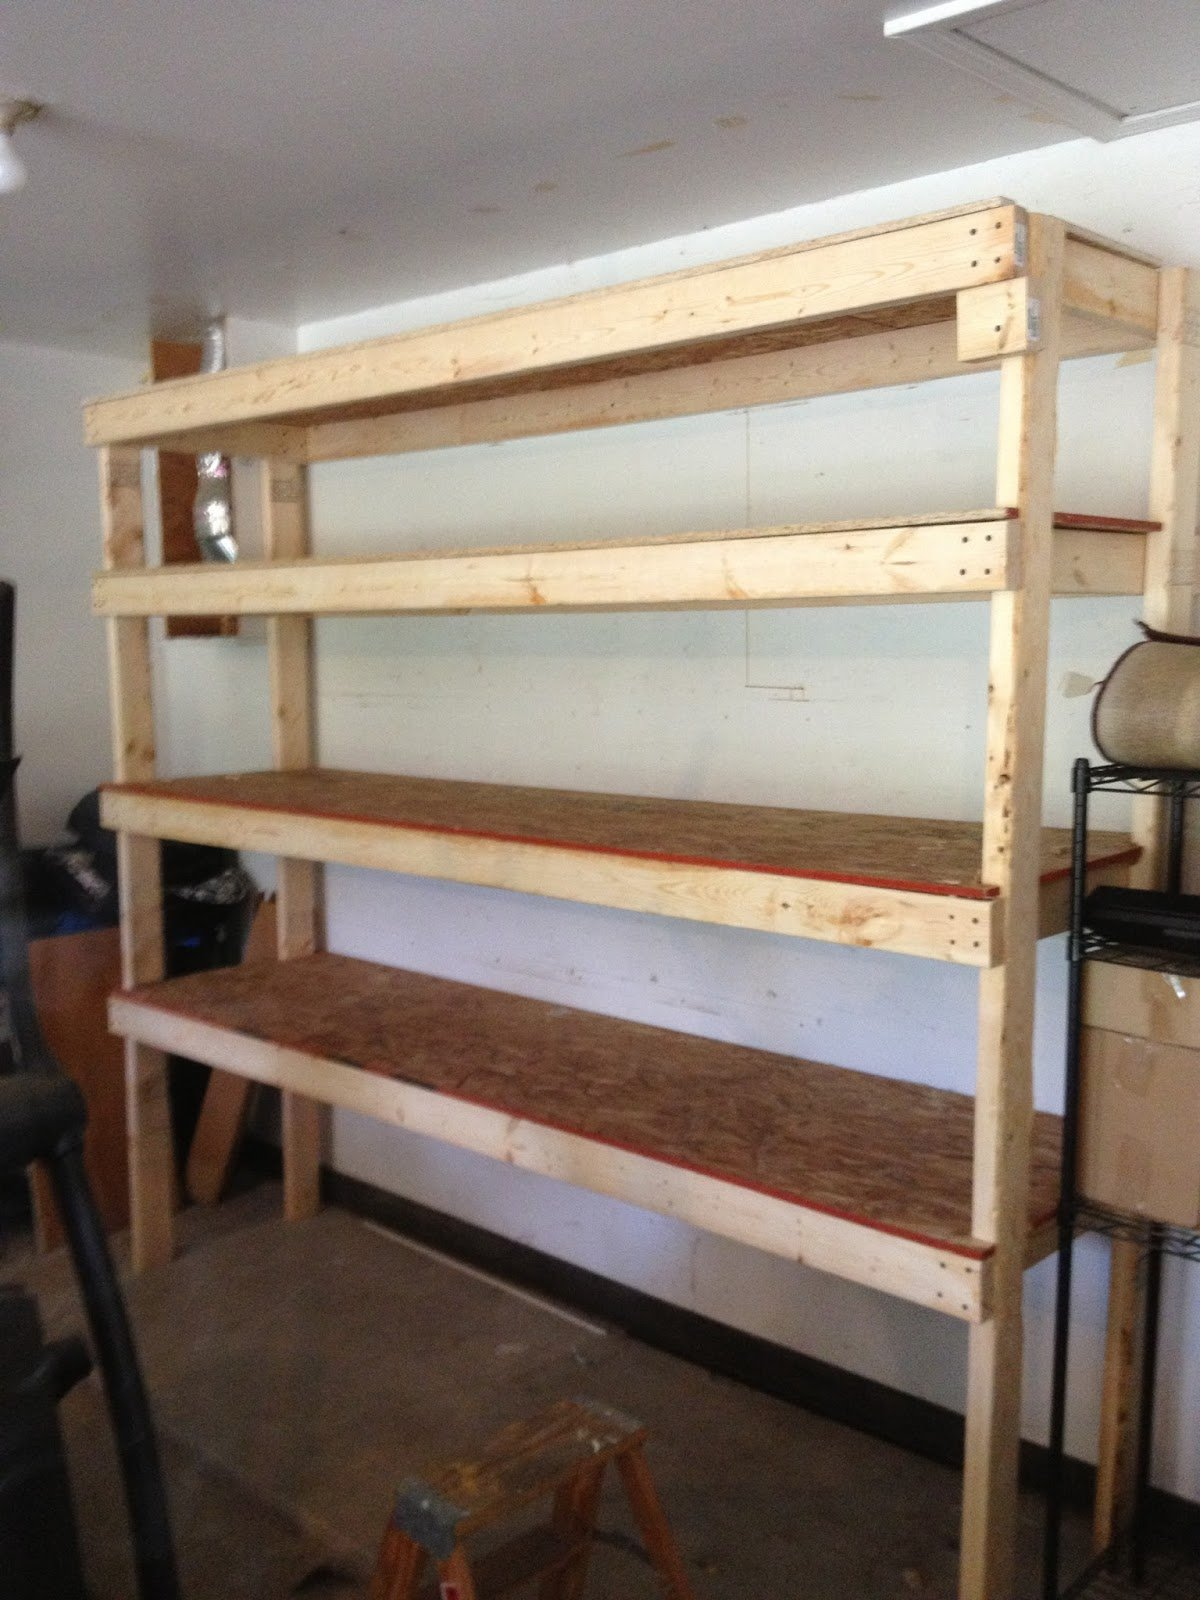 DIY Garage Shelves 2x4 & 20 DIY Garage Shelving Ideas | Guide Patterns